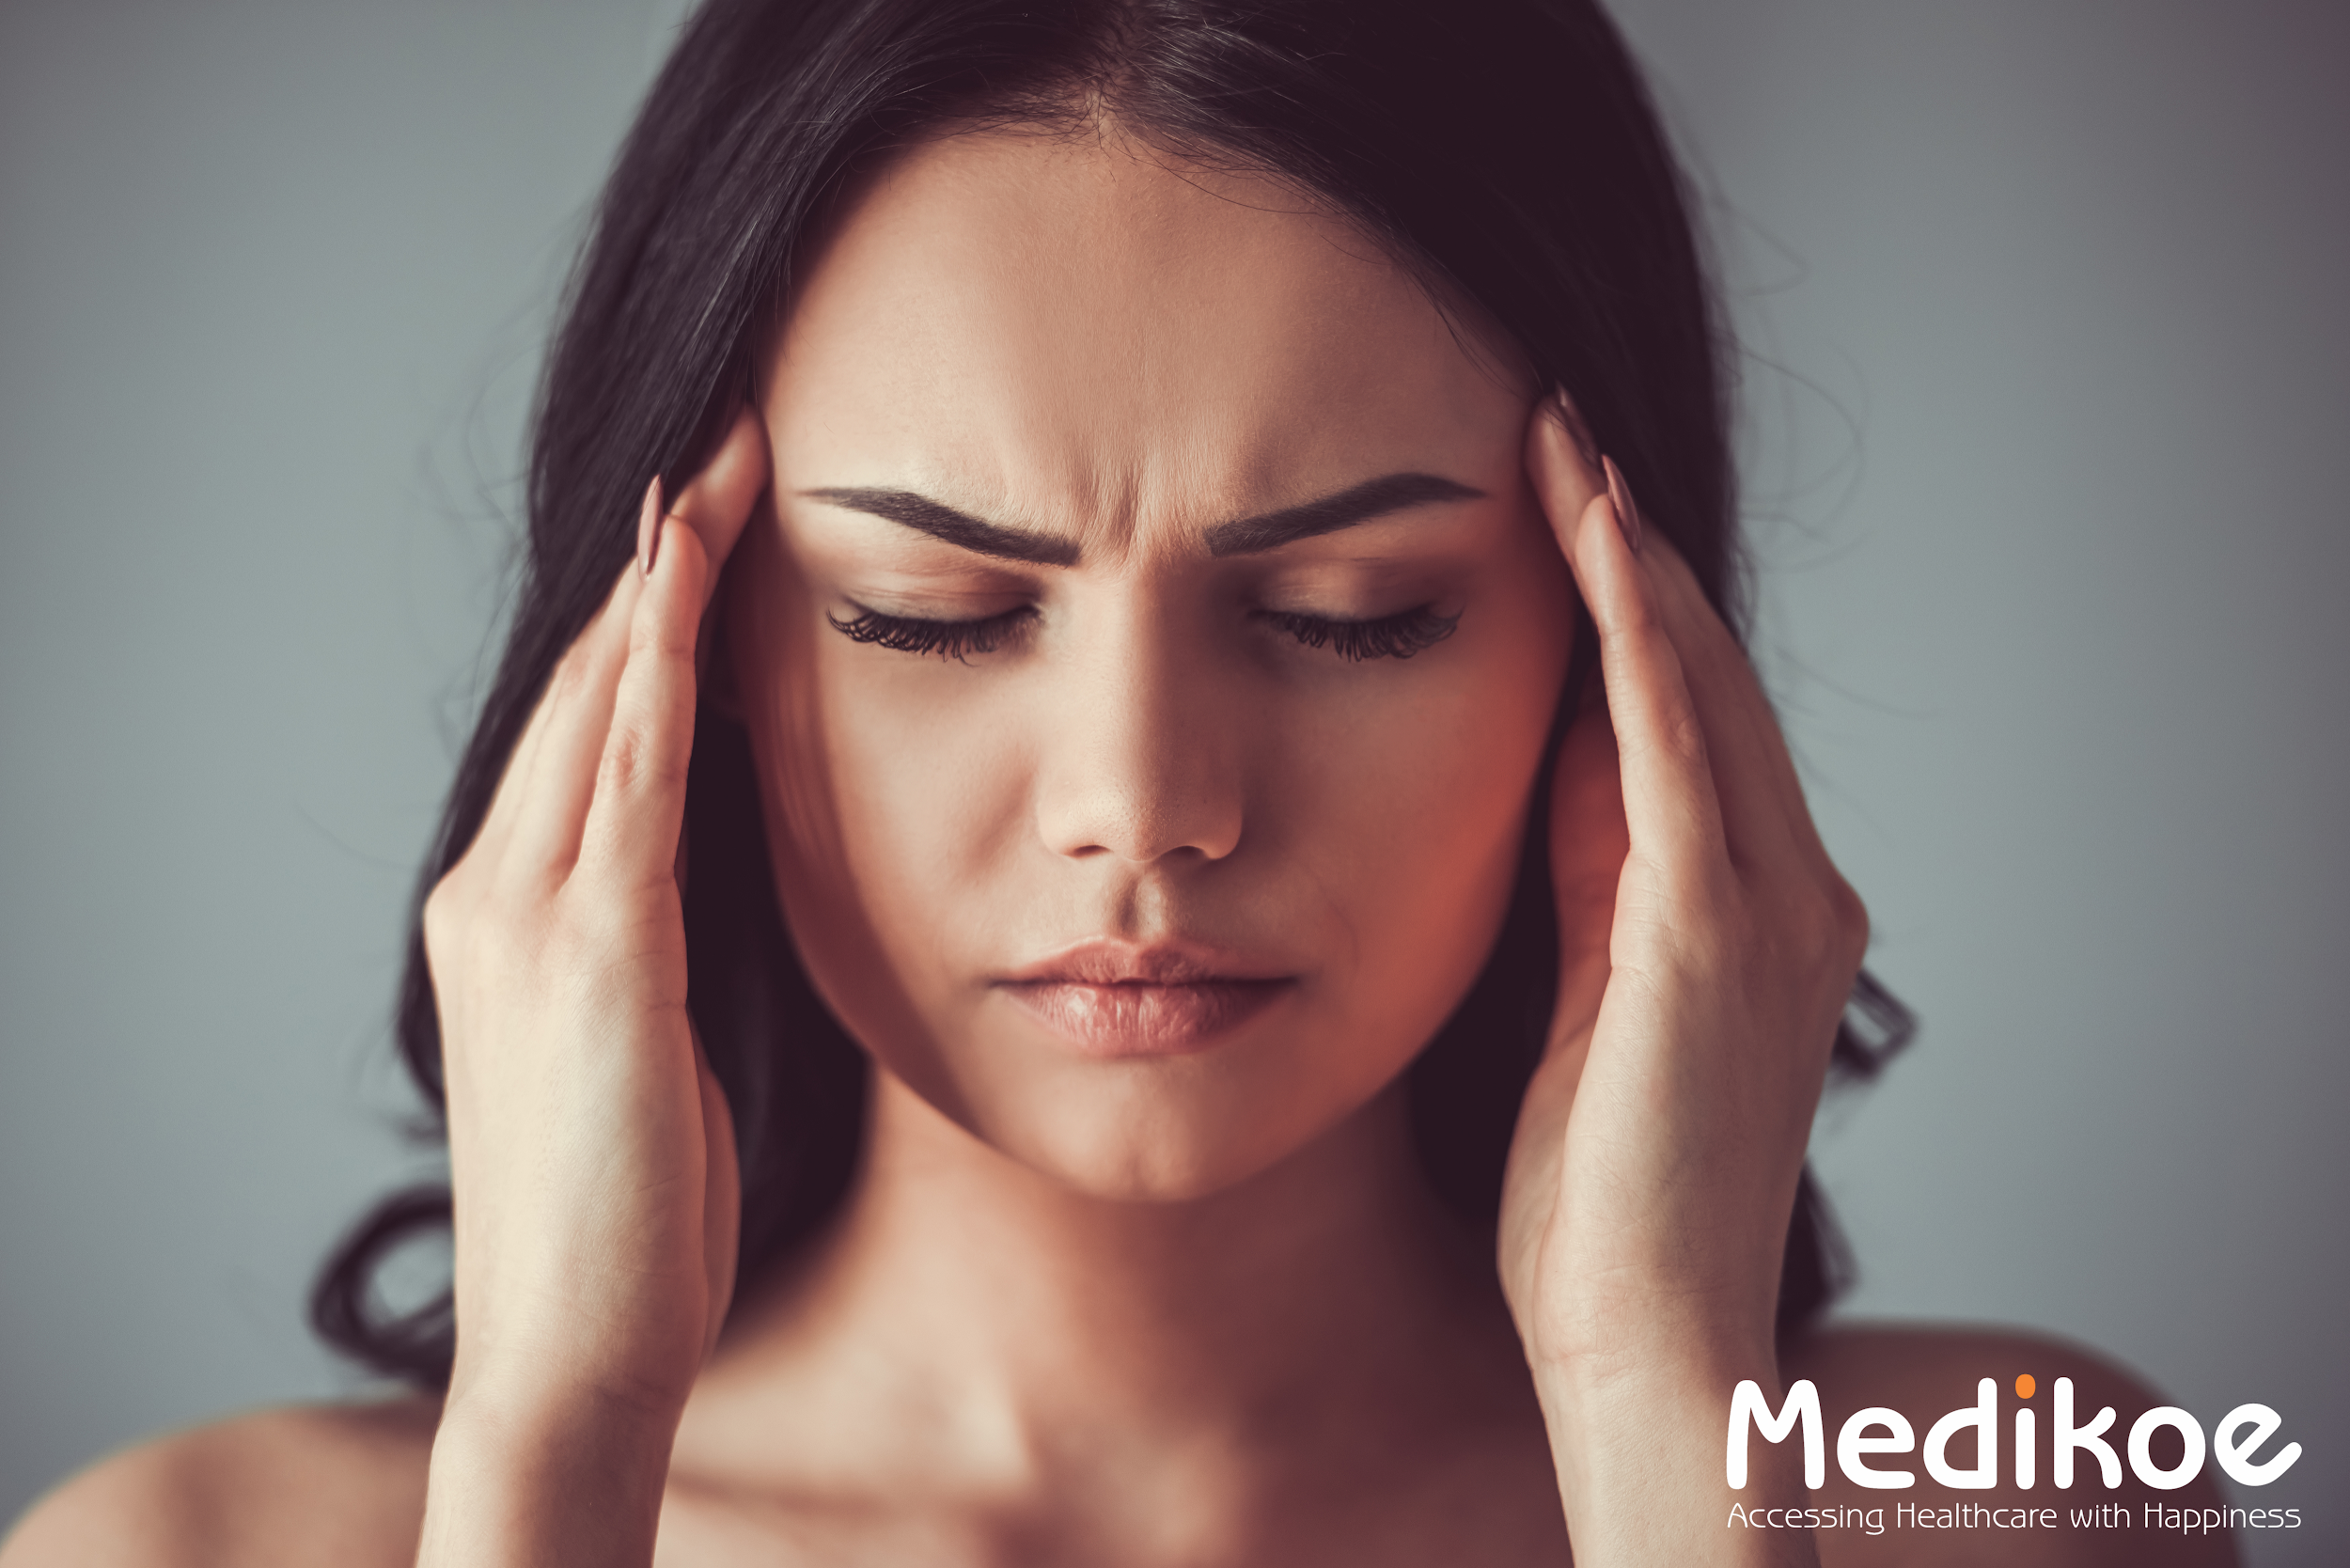 Can physiotherapy help in managing headaches?